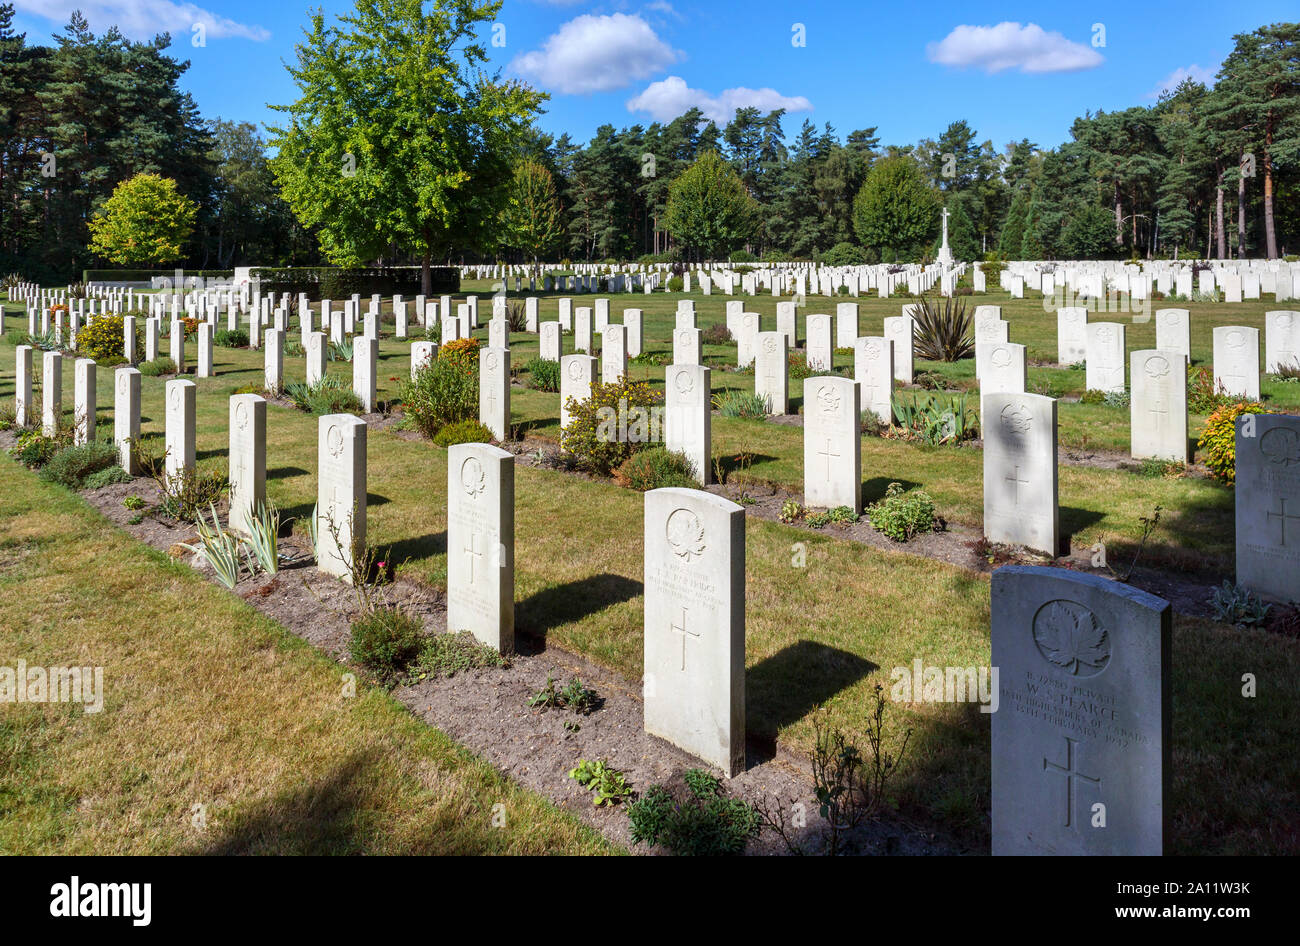 Rows of gravestones in the Canadian Section of the Military Cemetery at Brookwood Cemetery, Pirbright, Woking, Surrey, southeast England, UK Stock Photo